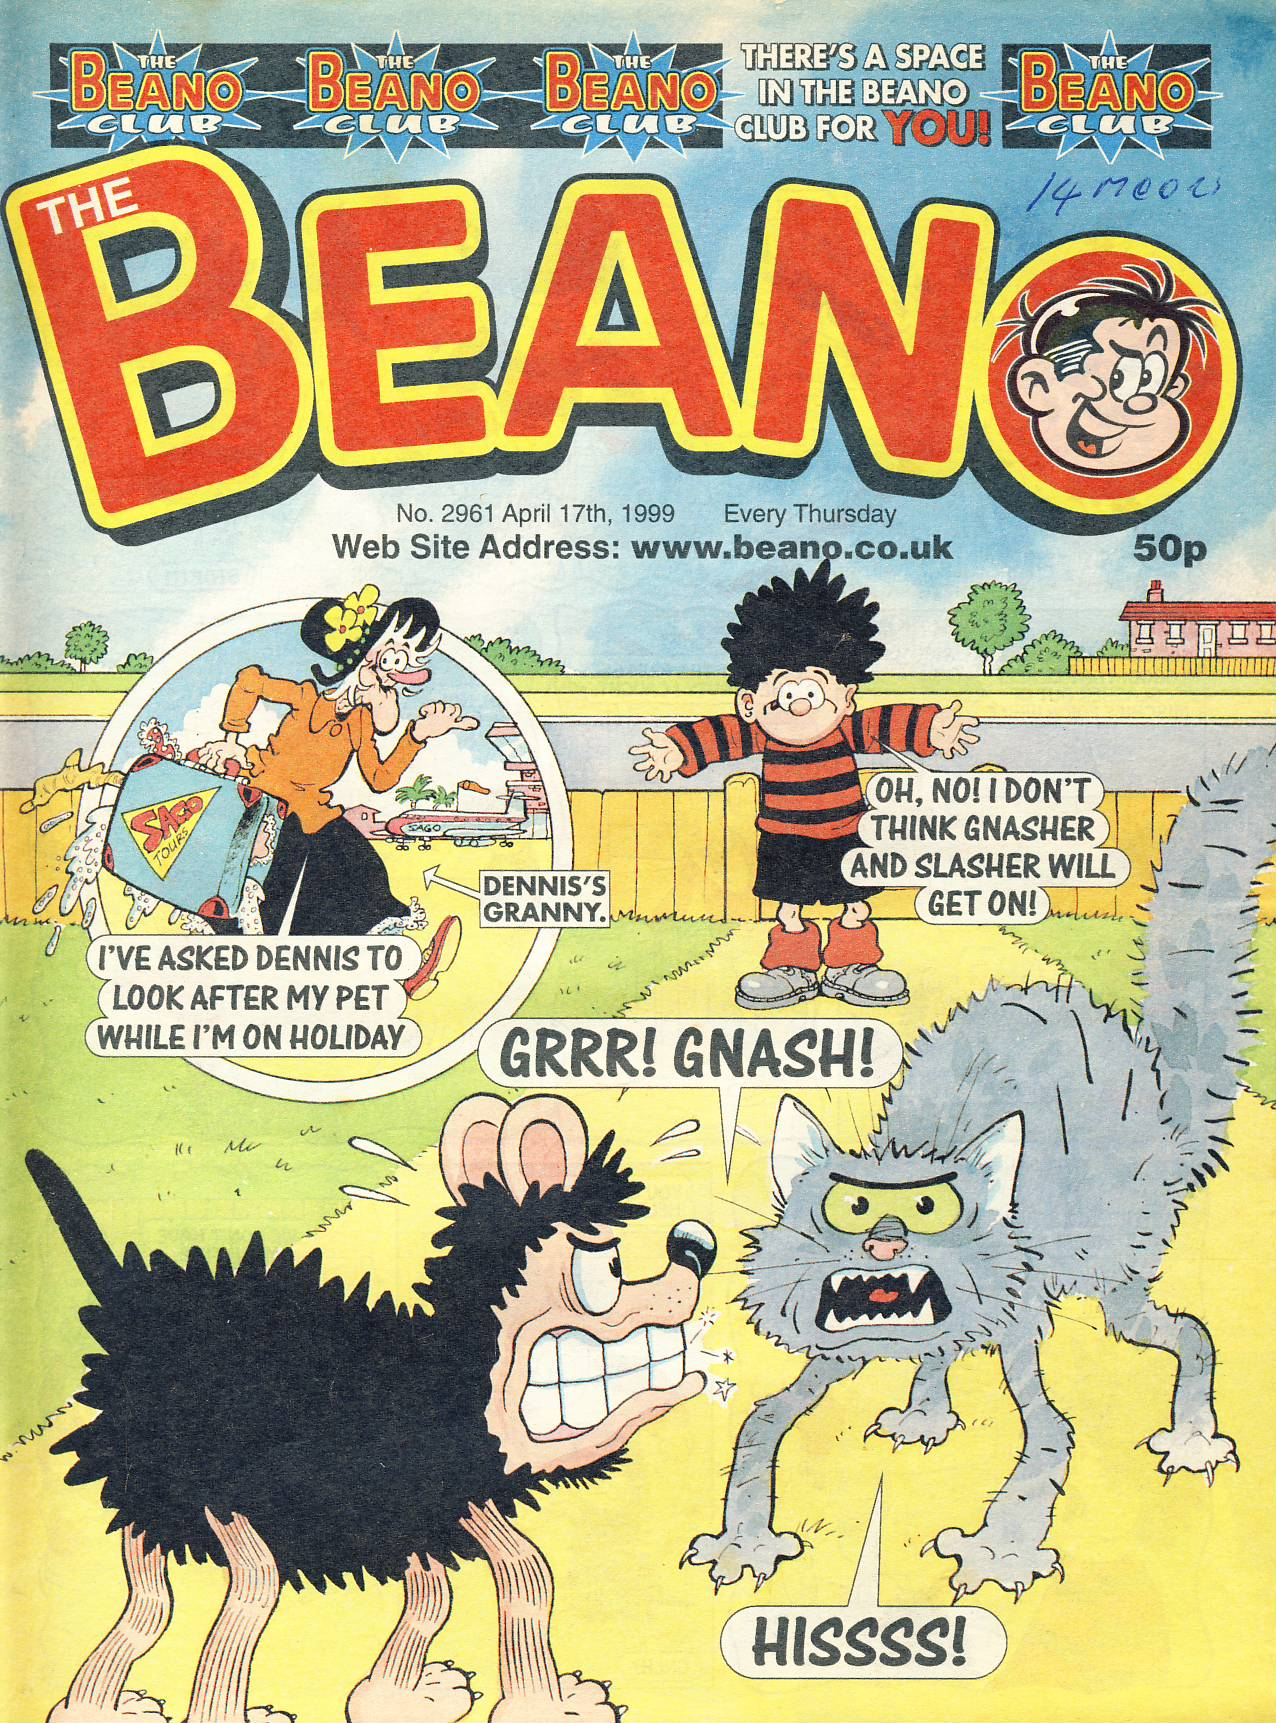 1999 April 17th BEANO vintage comic Good Gift Christmas Present Birthday Anniversary ref320a pre-owned item in good read condition.